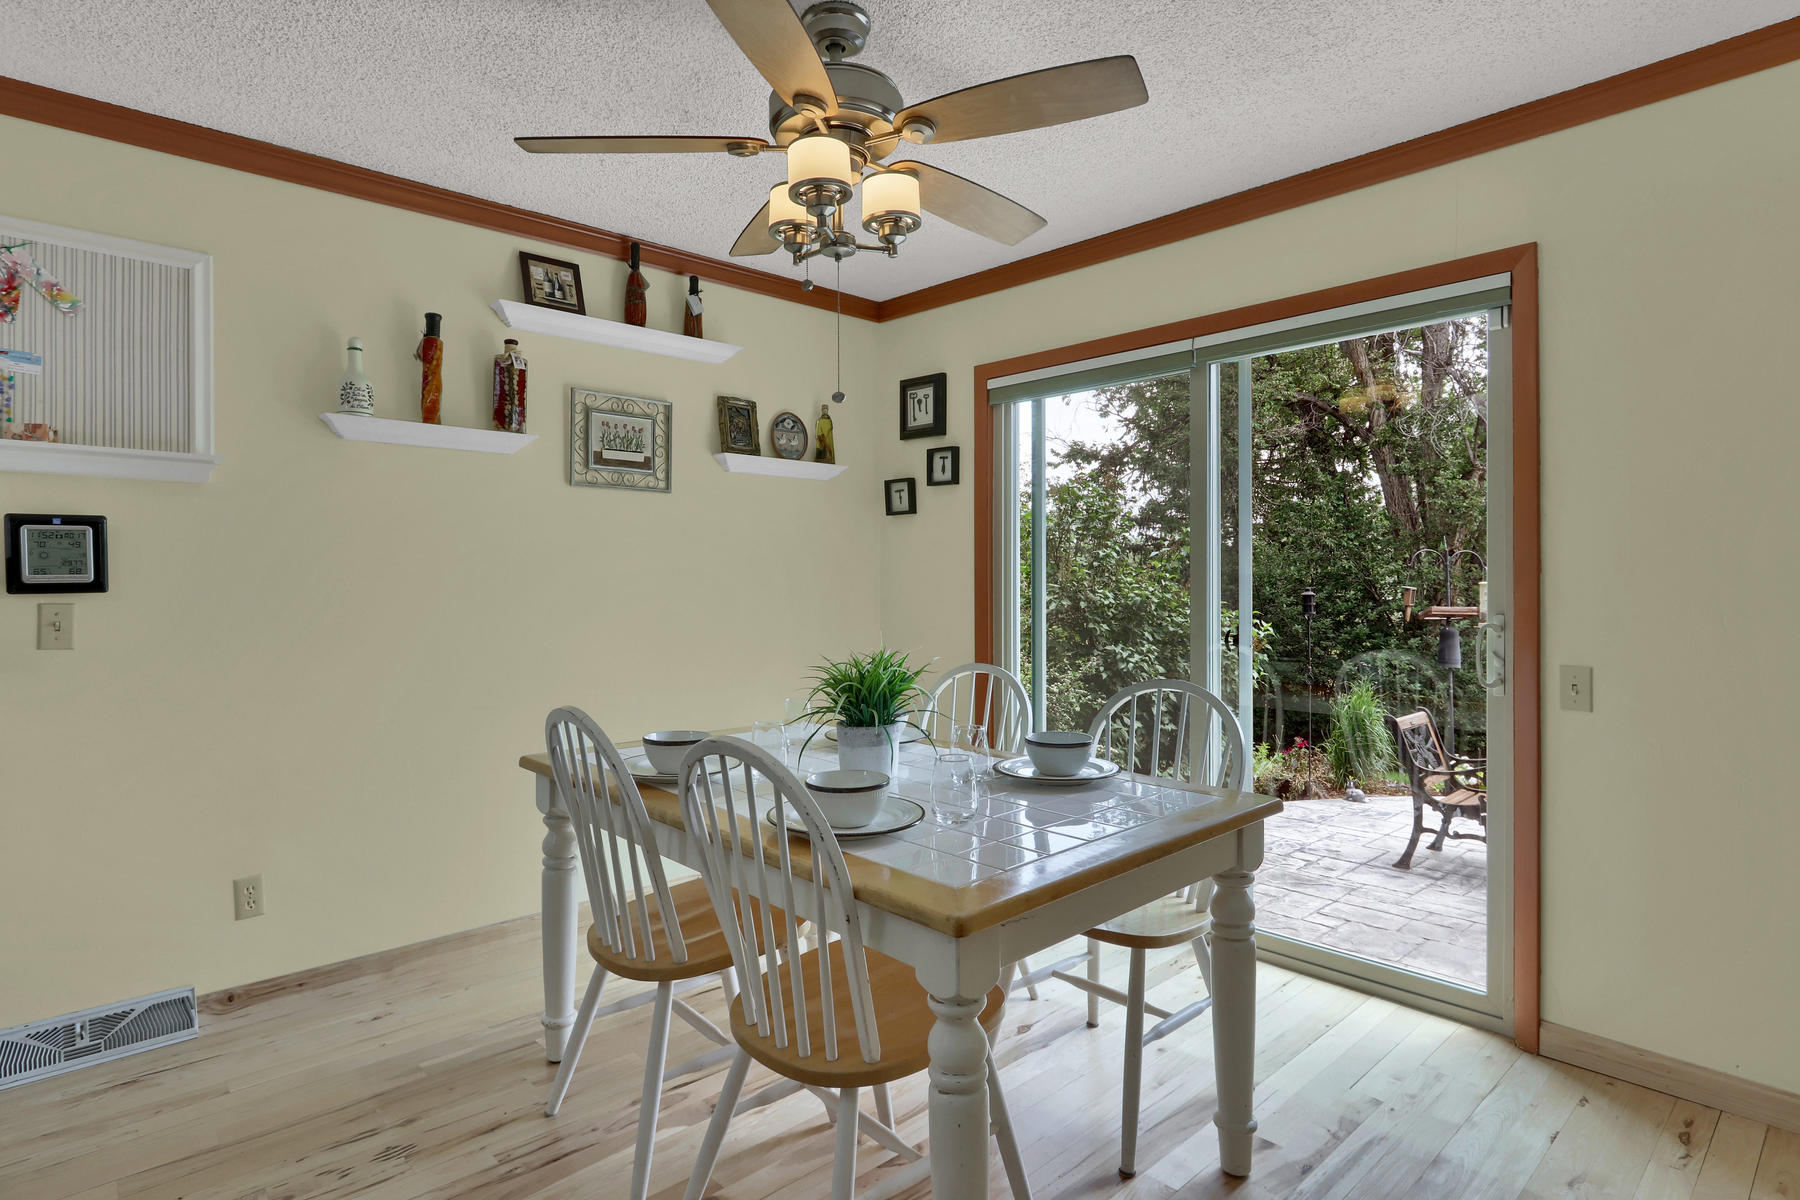 8490 Independence Way Arvada-021-031-Dining Room-MLS_Size.jpg